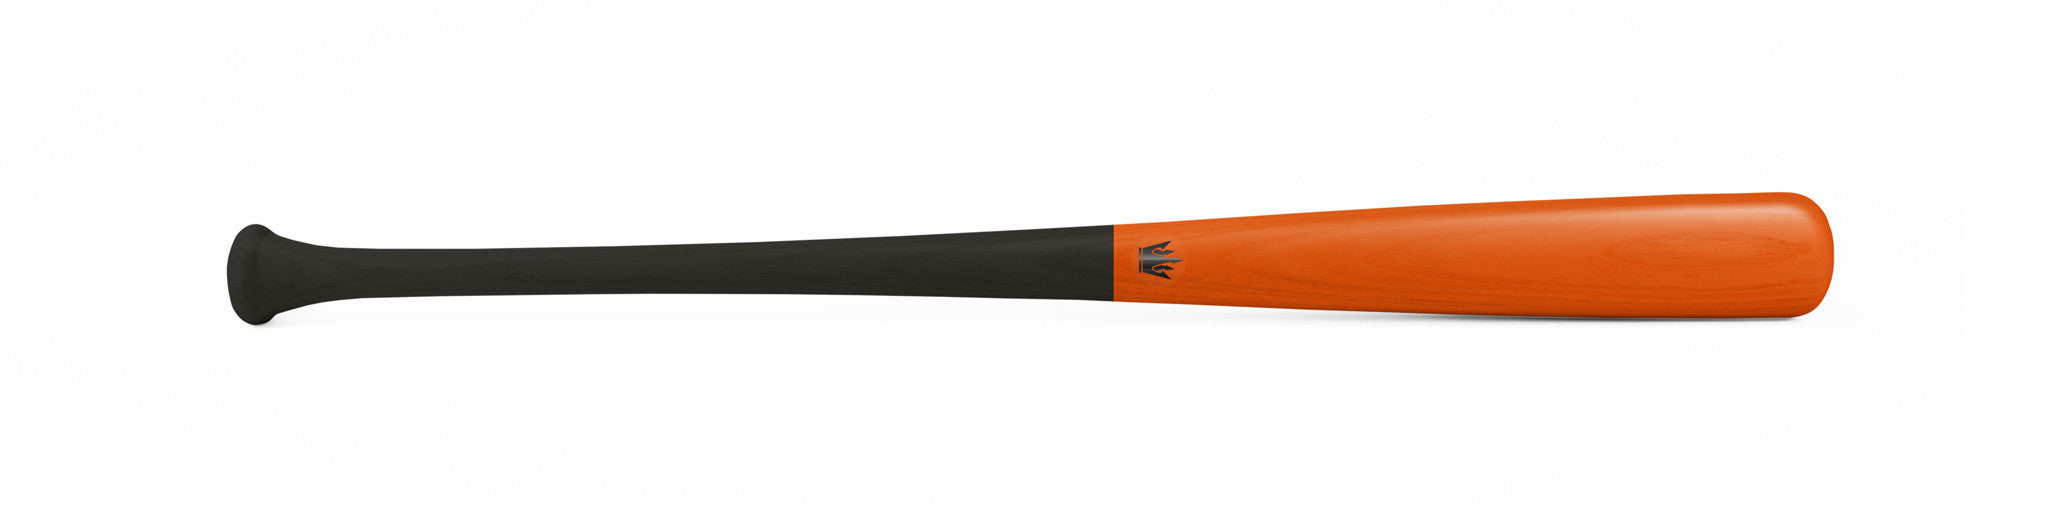 Wood bat - Ash model Y271 Black Orange - 24